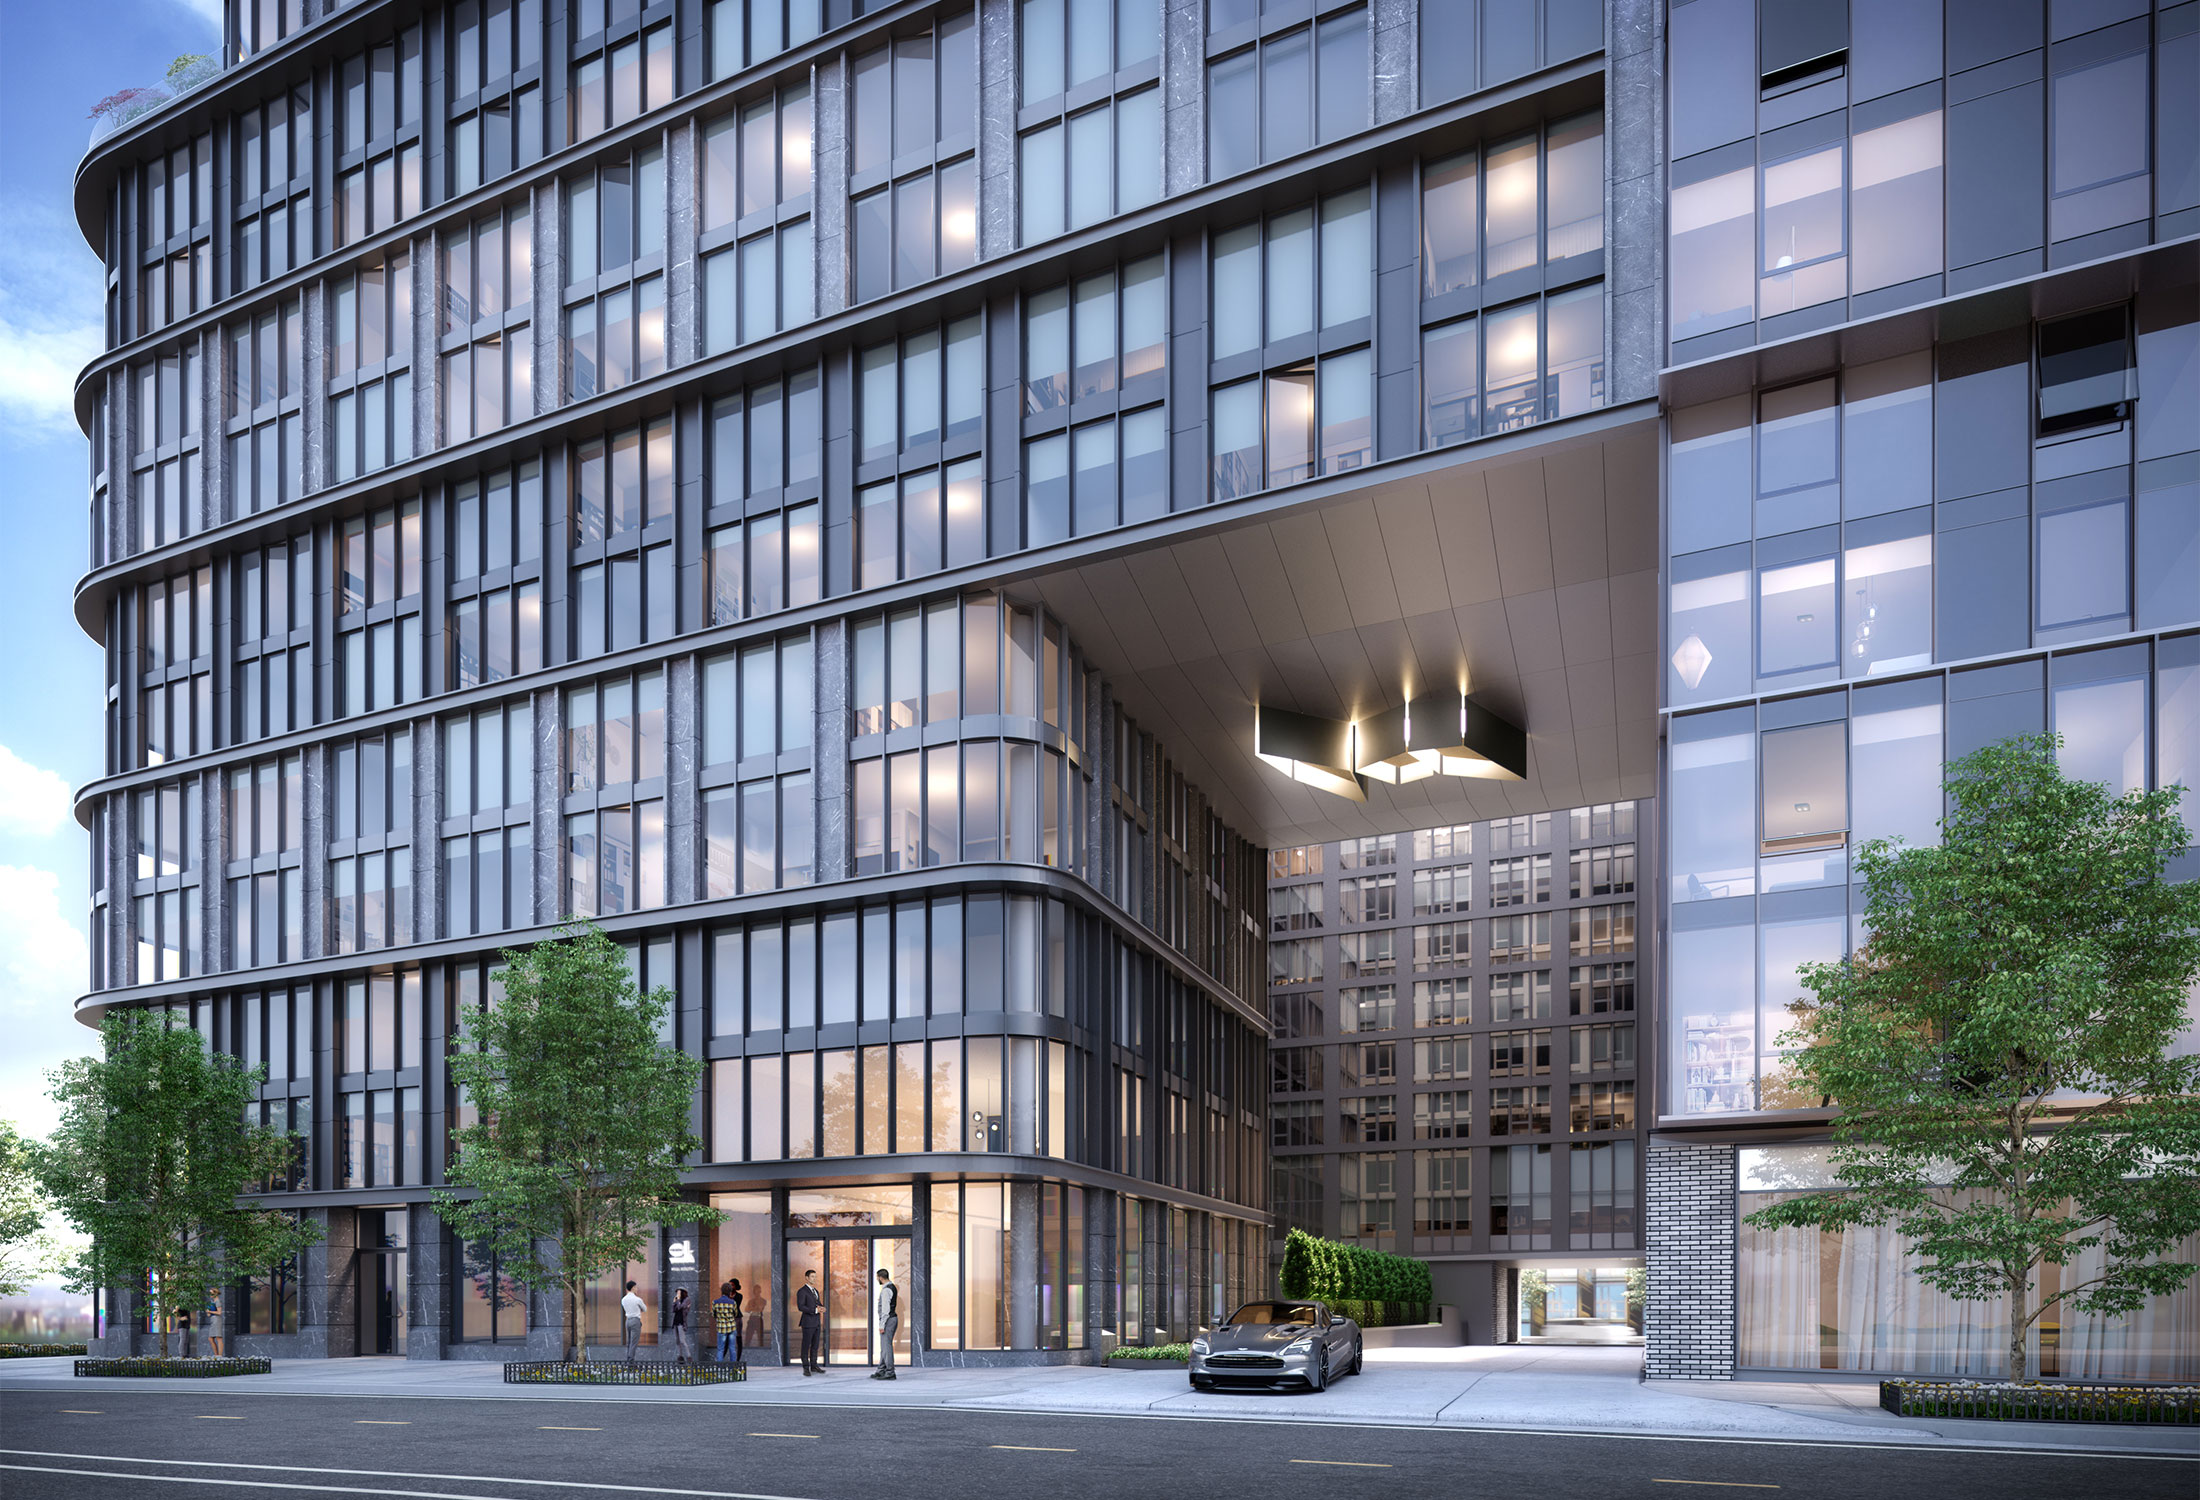 Architectural Rendering of the entrance of the 10K Hill South project located in Capitol Riverfront, Washington DC